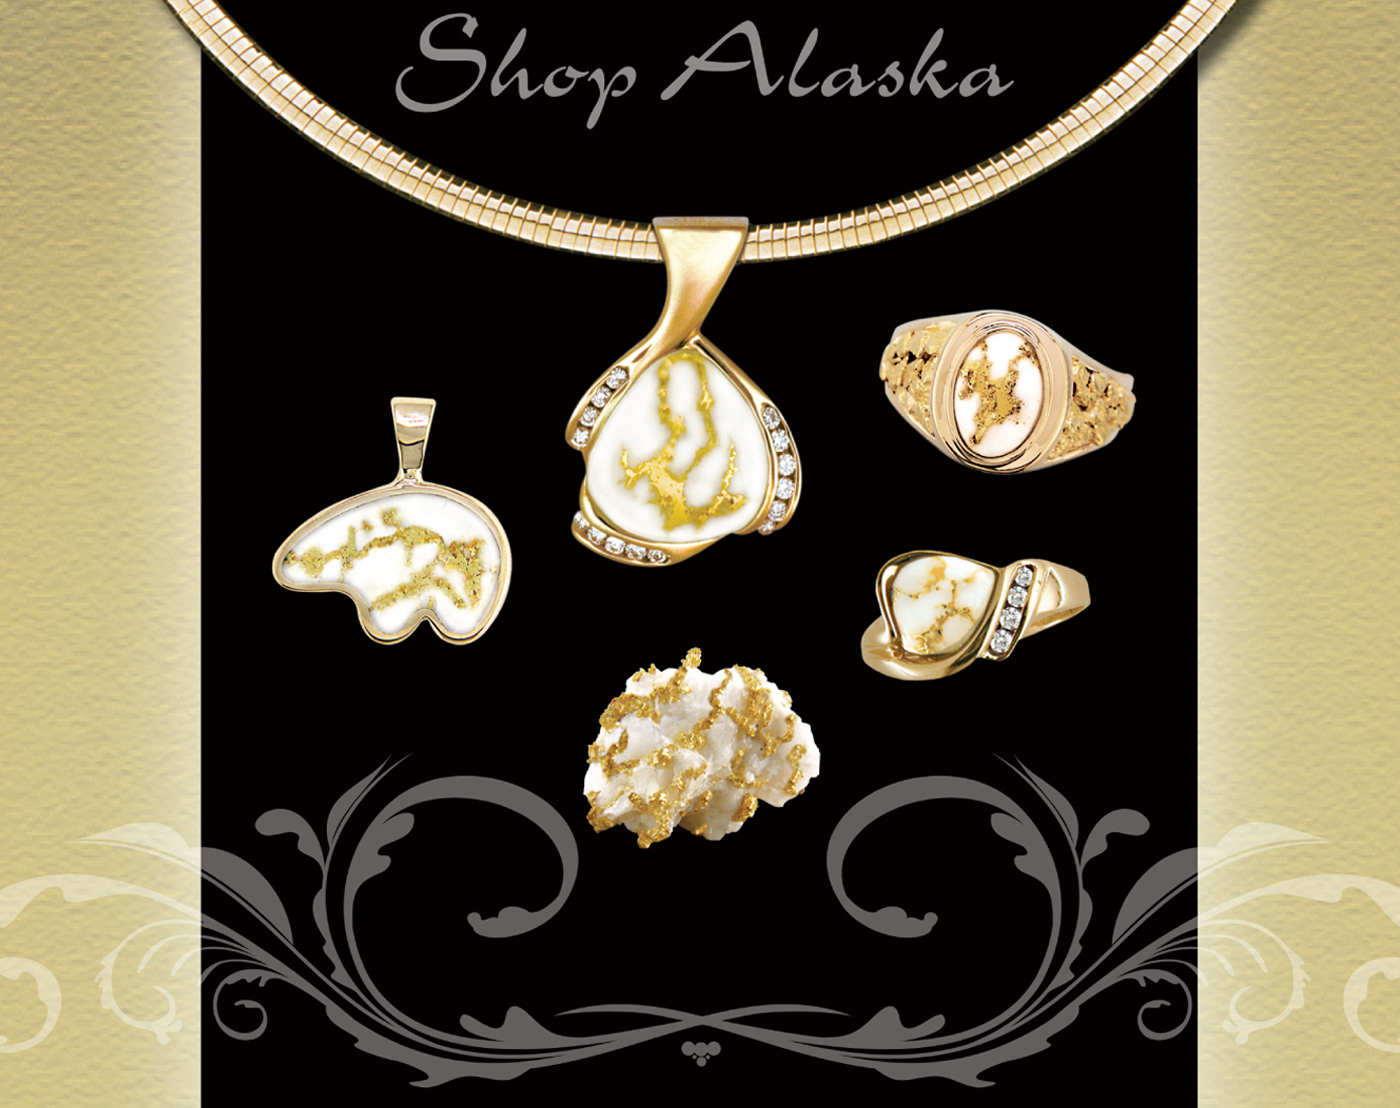 anchorage jewelry stores jewelry